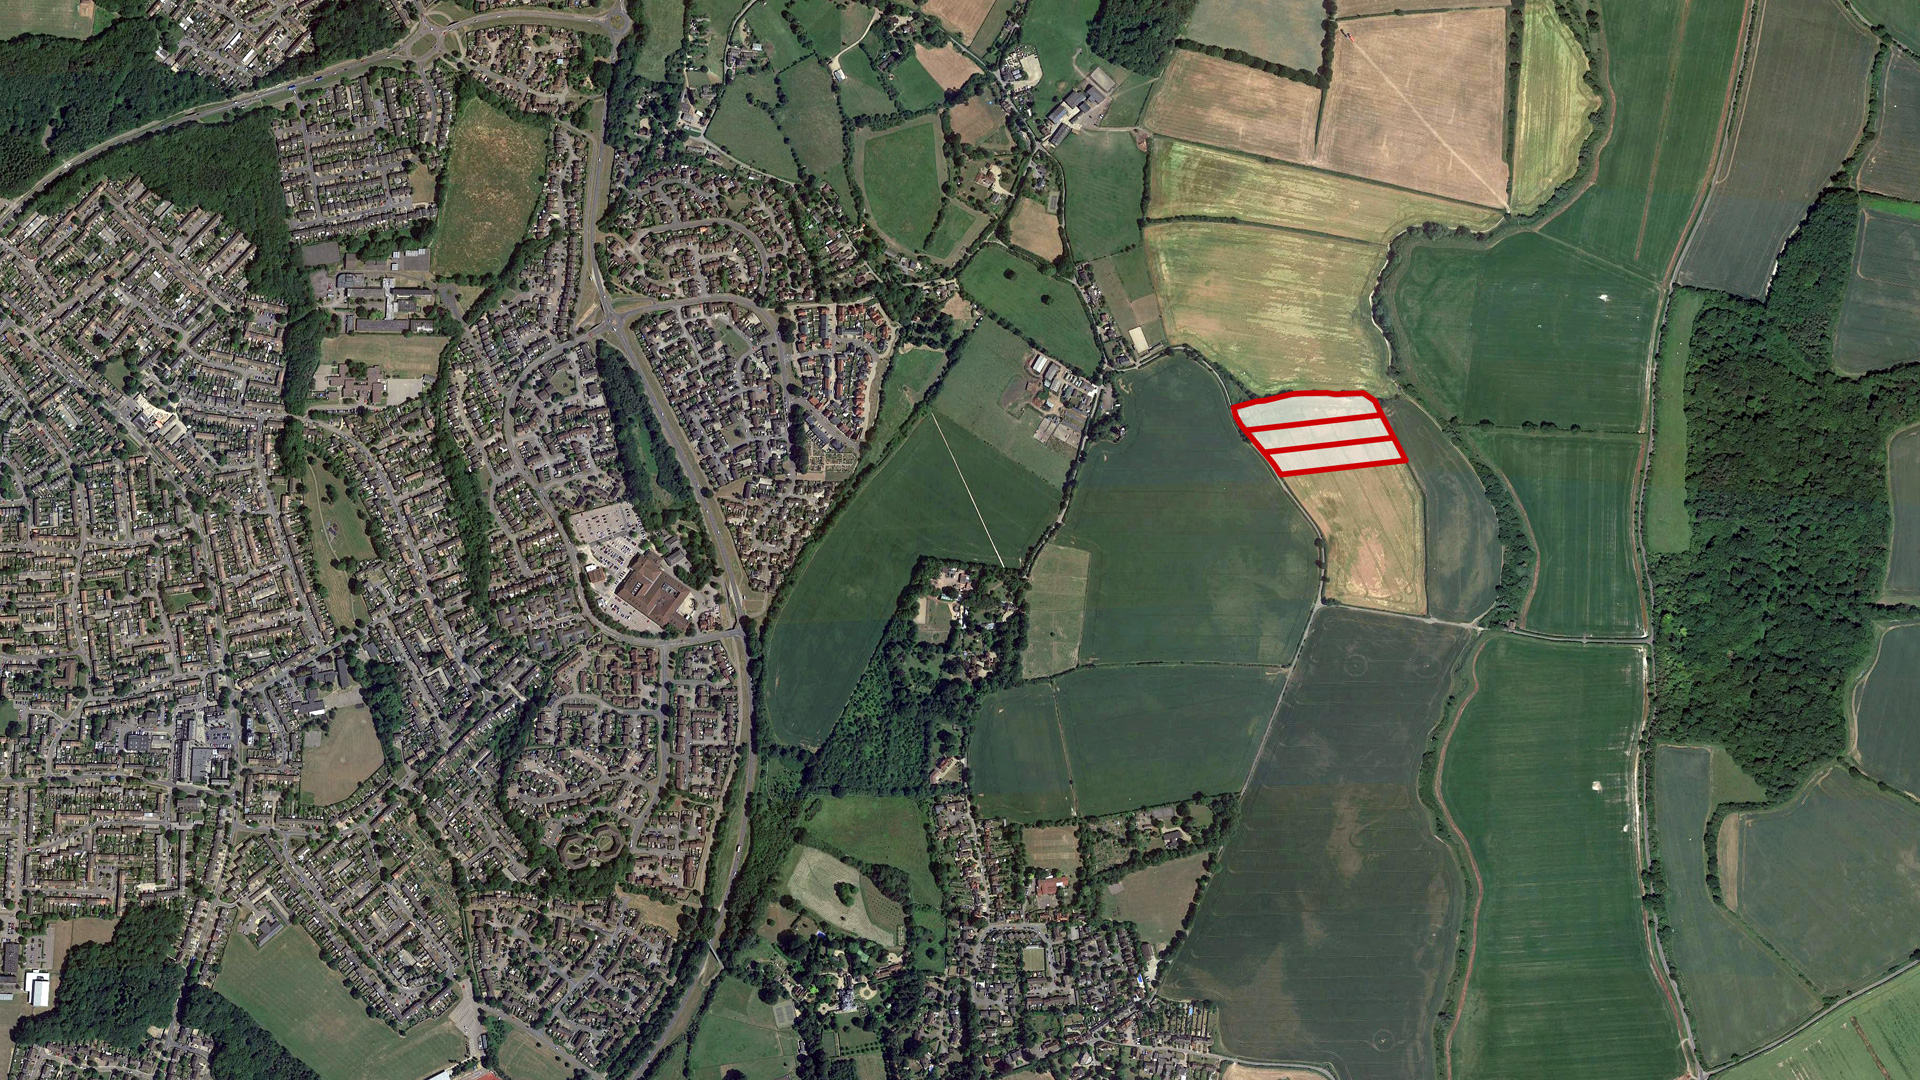 Land for sale in Aston End aerial image